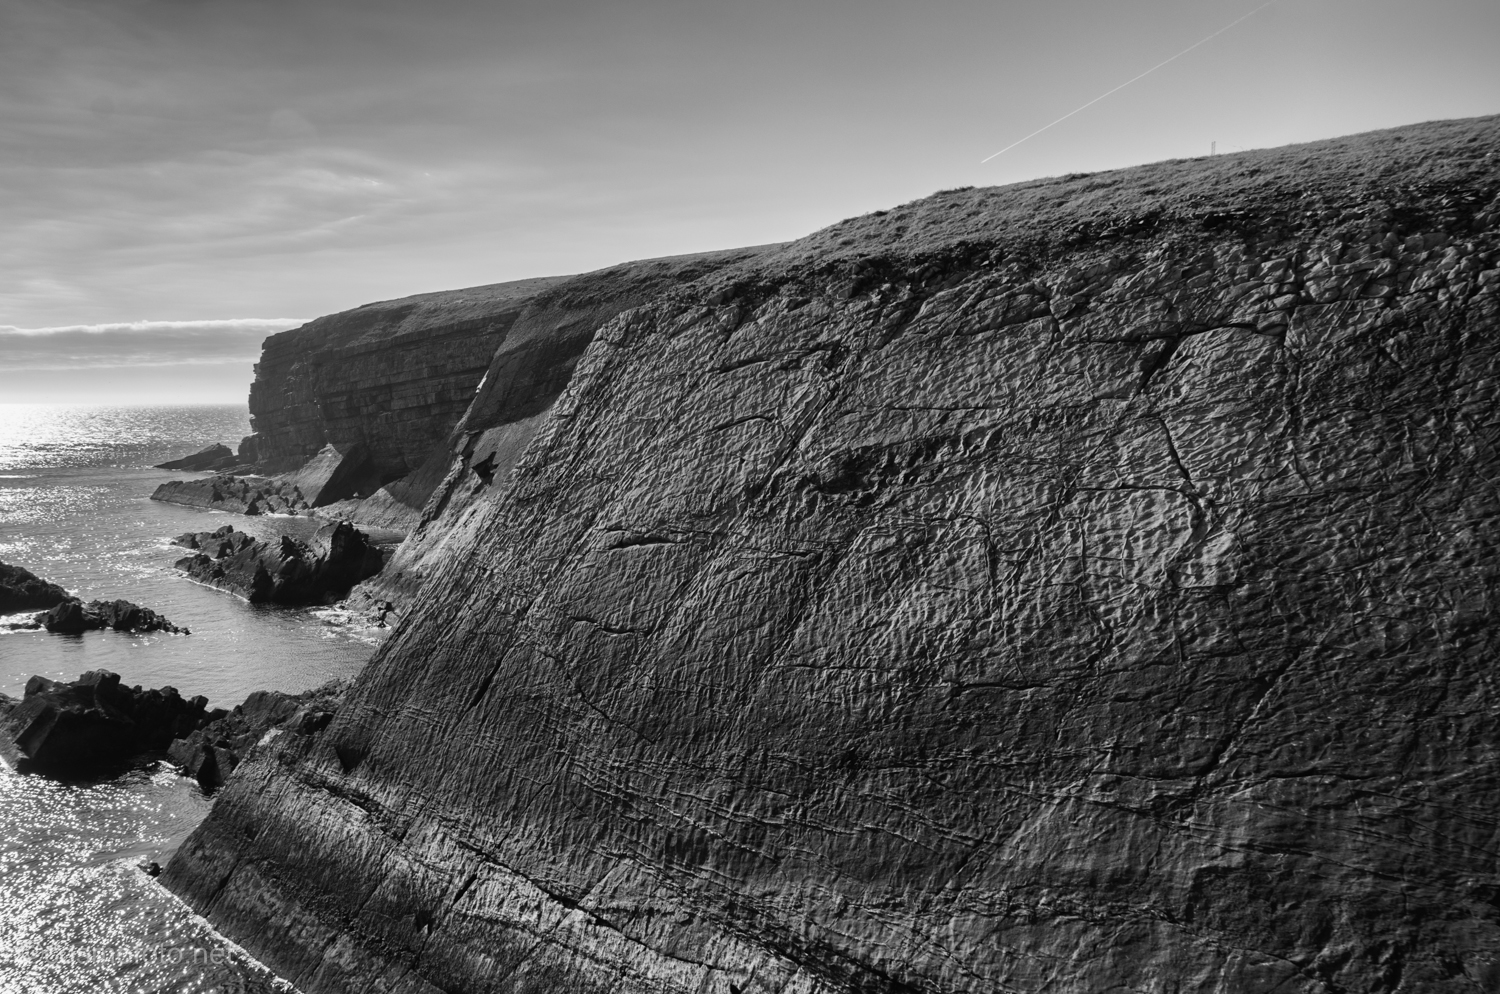 Another shot of the cliffs around Loop Head